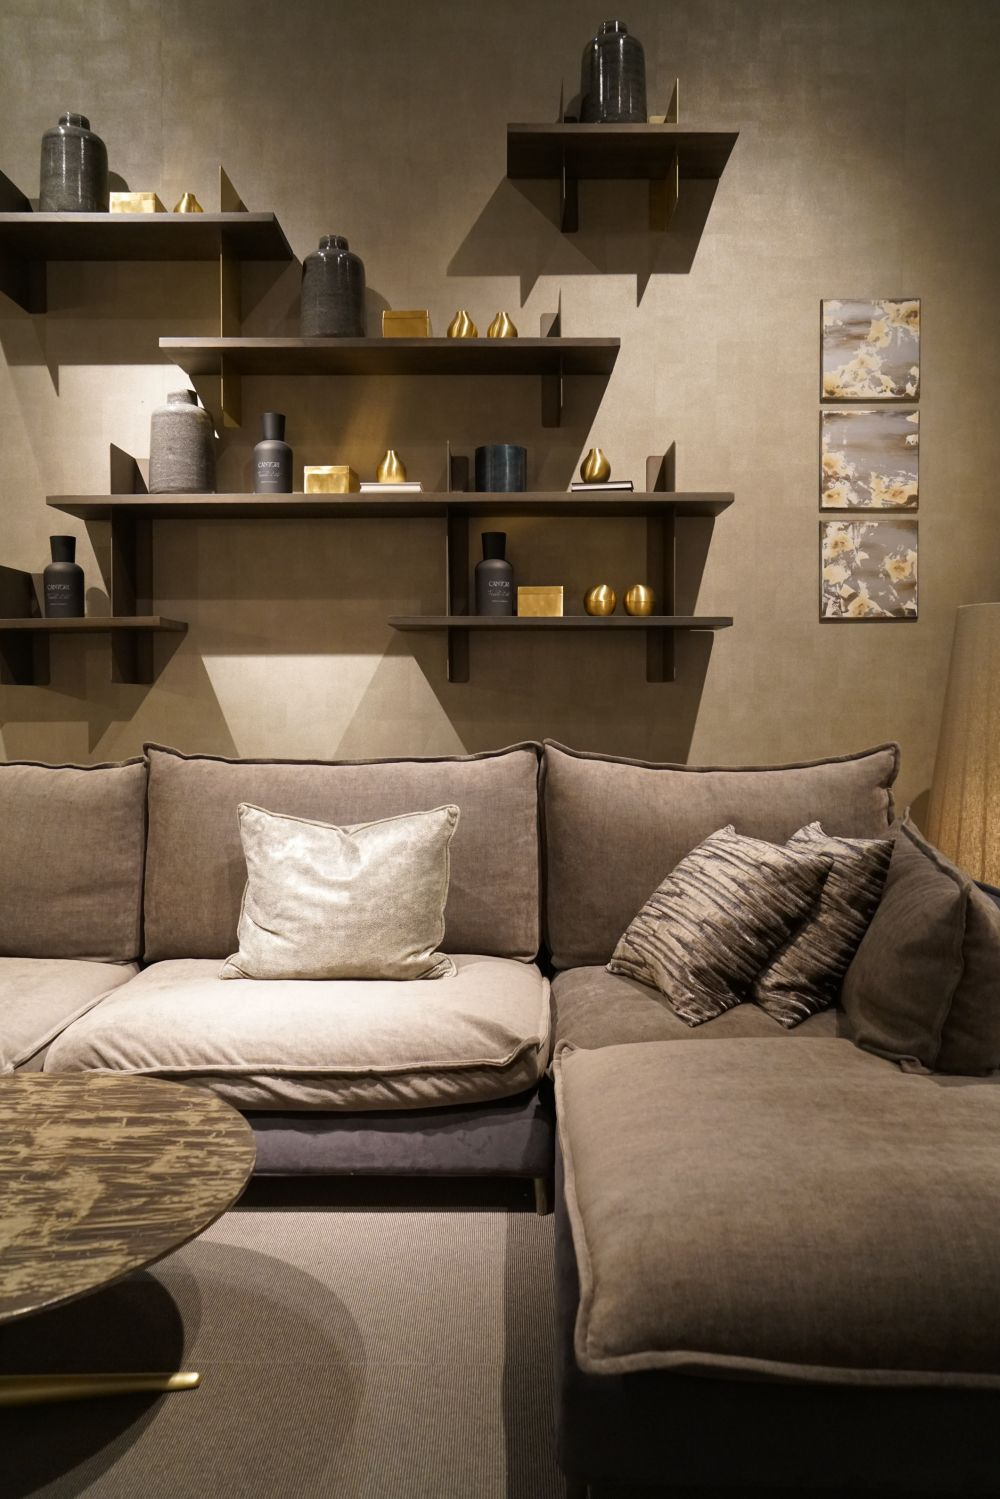 The shelves can be simple and bland and the focus can be on the items that you put on display on them